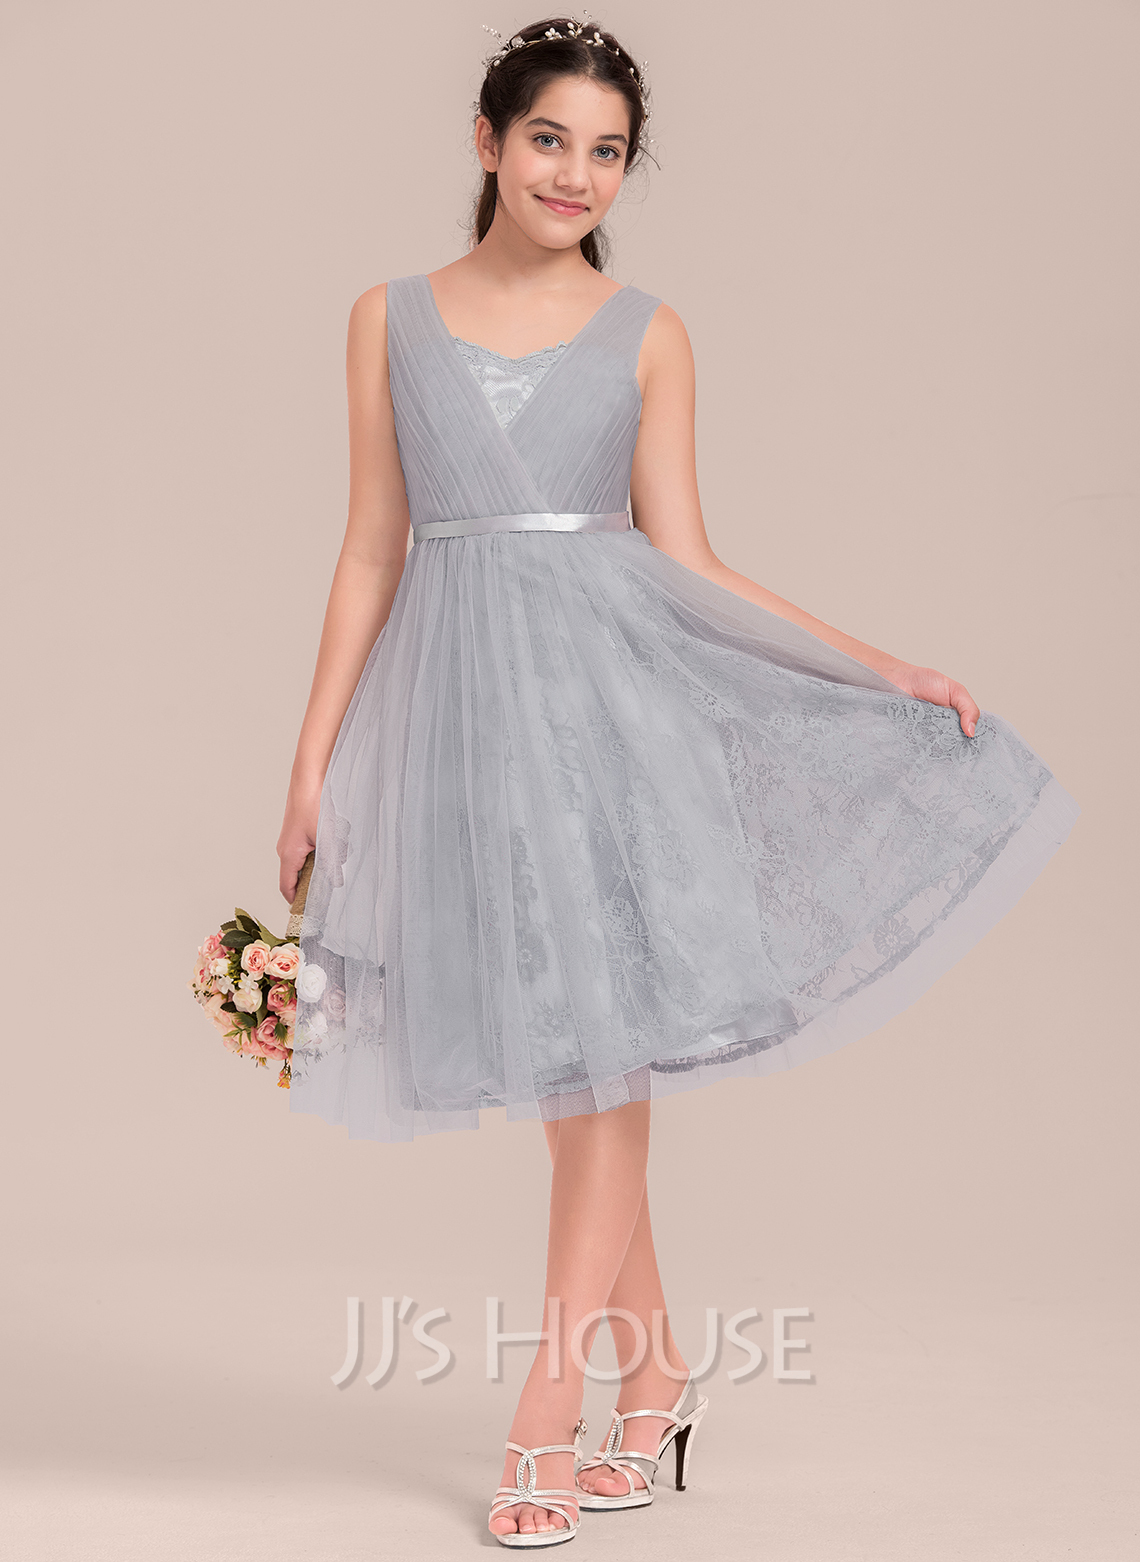 A-Line Sweetheart Knee-Length Tulle Junior Bridesmaid Dress With Ruffle